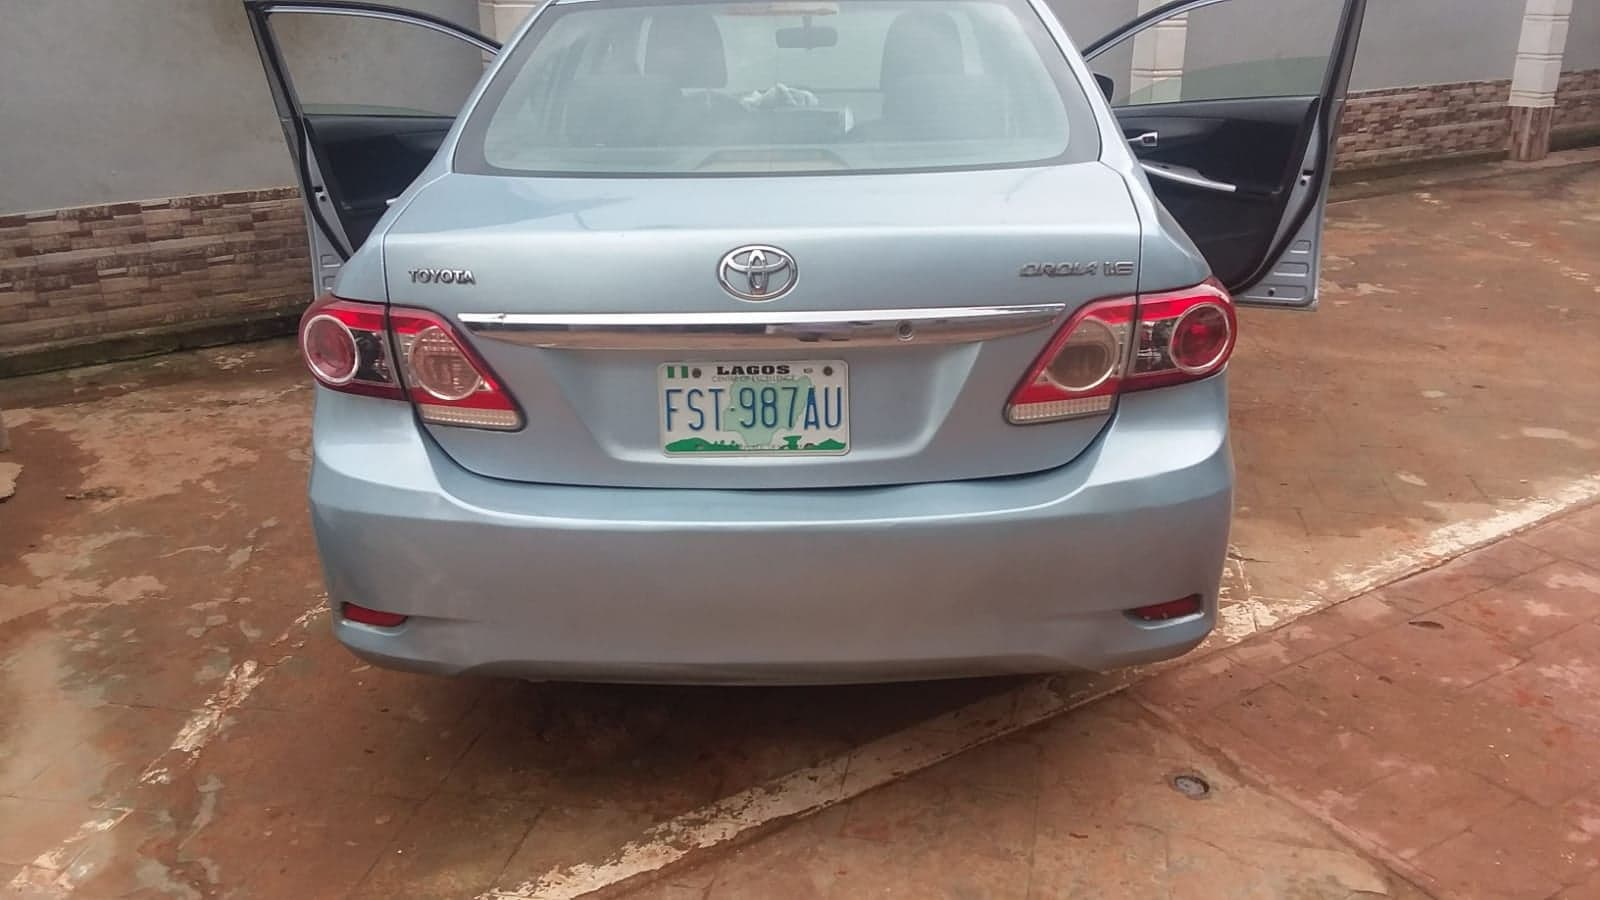 brand new toyota camry price in nigeria grand avanza 1300cc corolla for sale lagos seller see description listed nov 7 2018 registered 2012 model bought